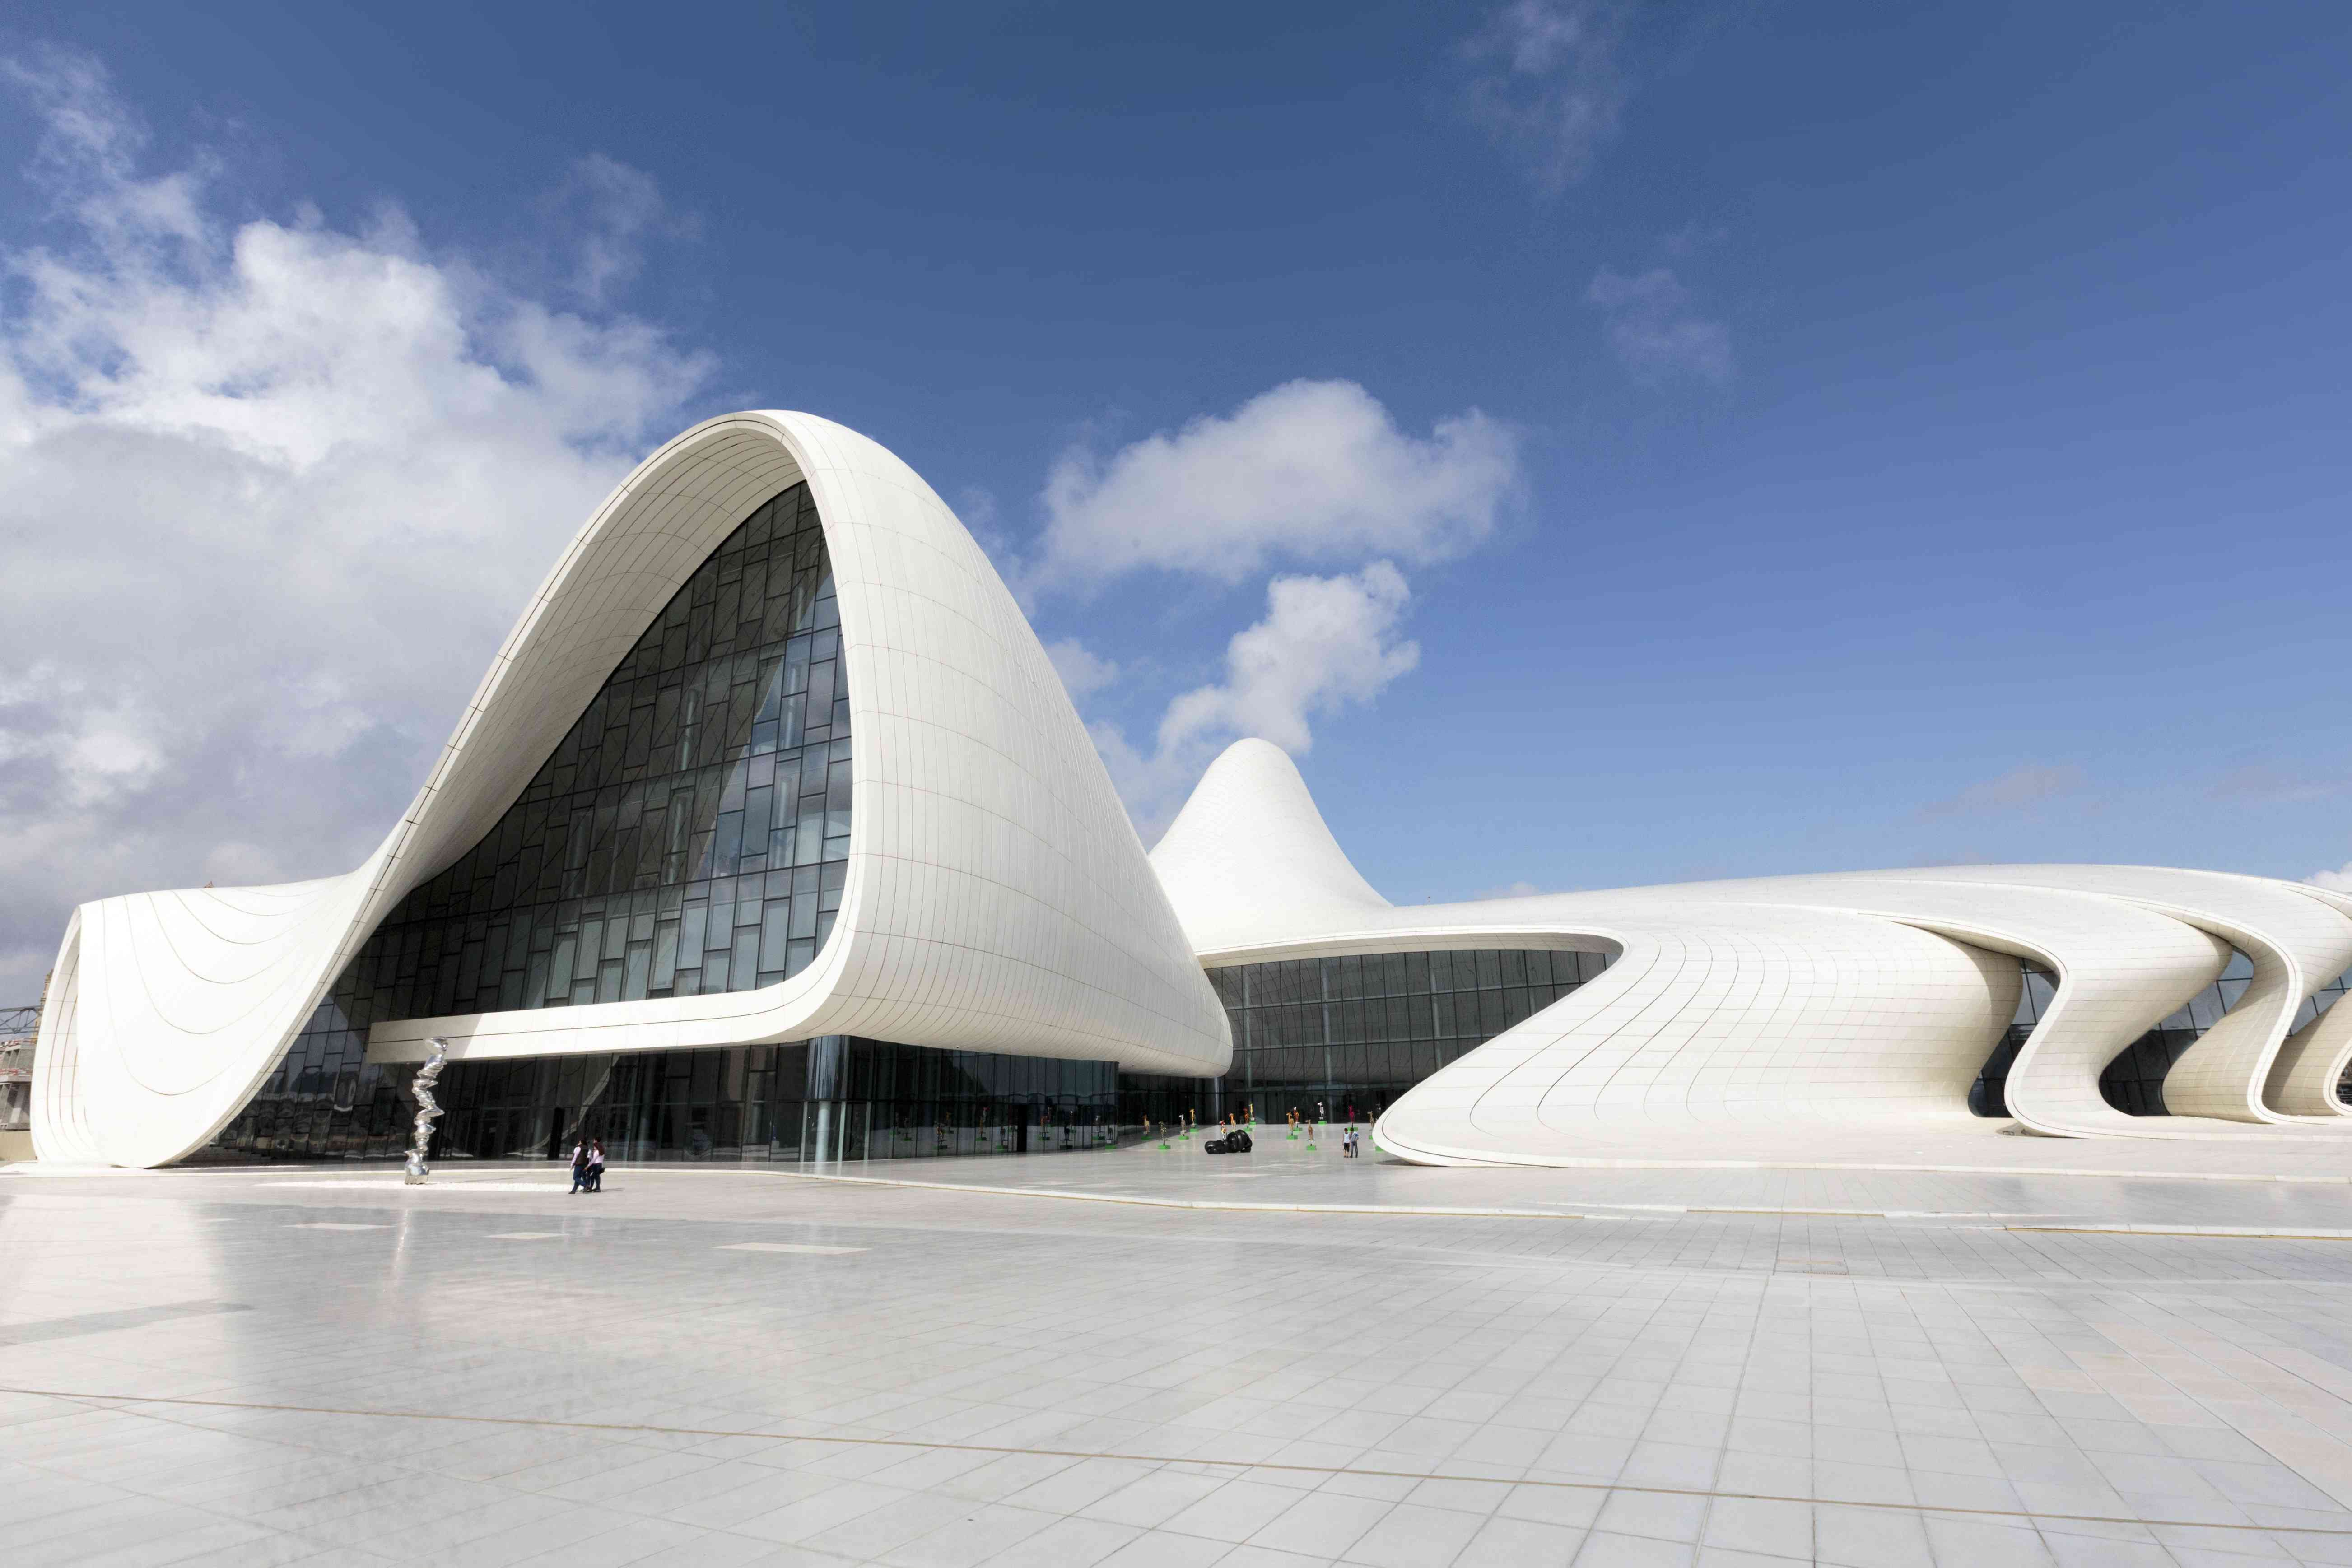 large white building with organic, curving arches and an empty white tile promenade